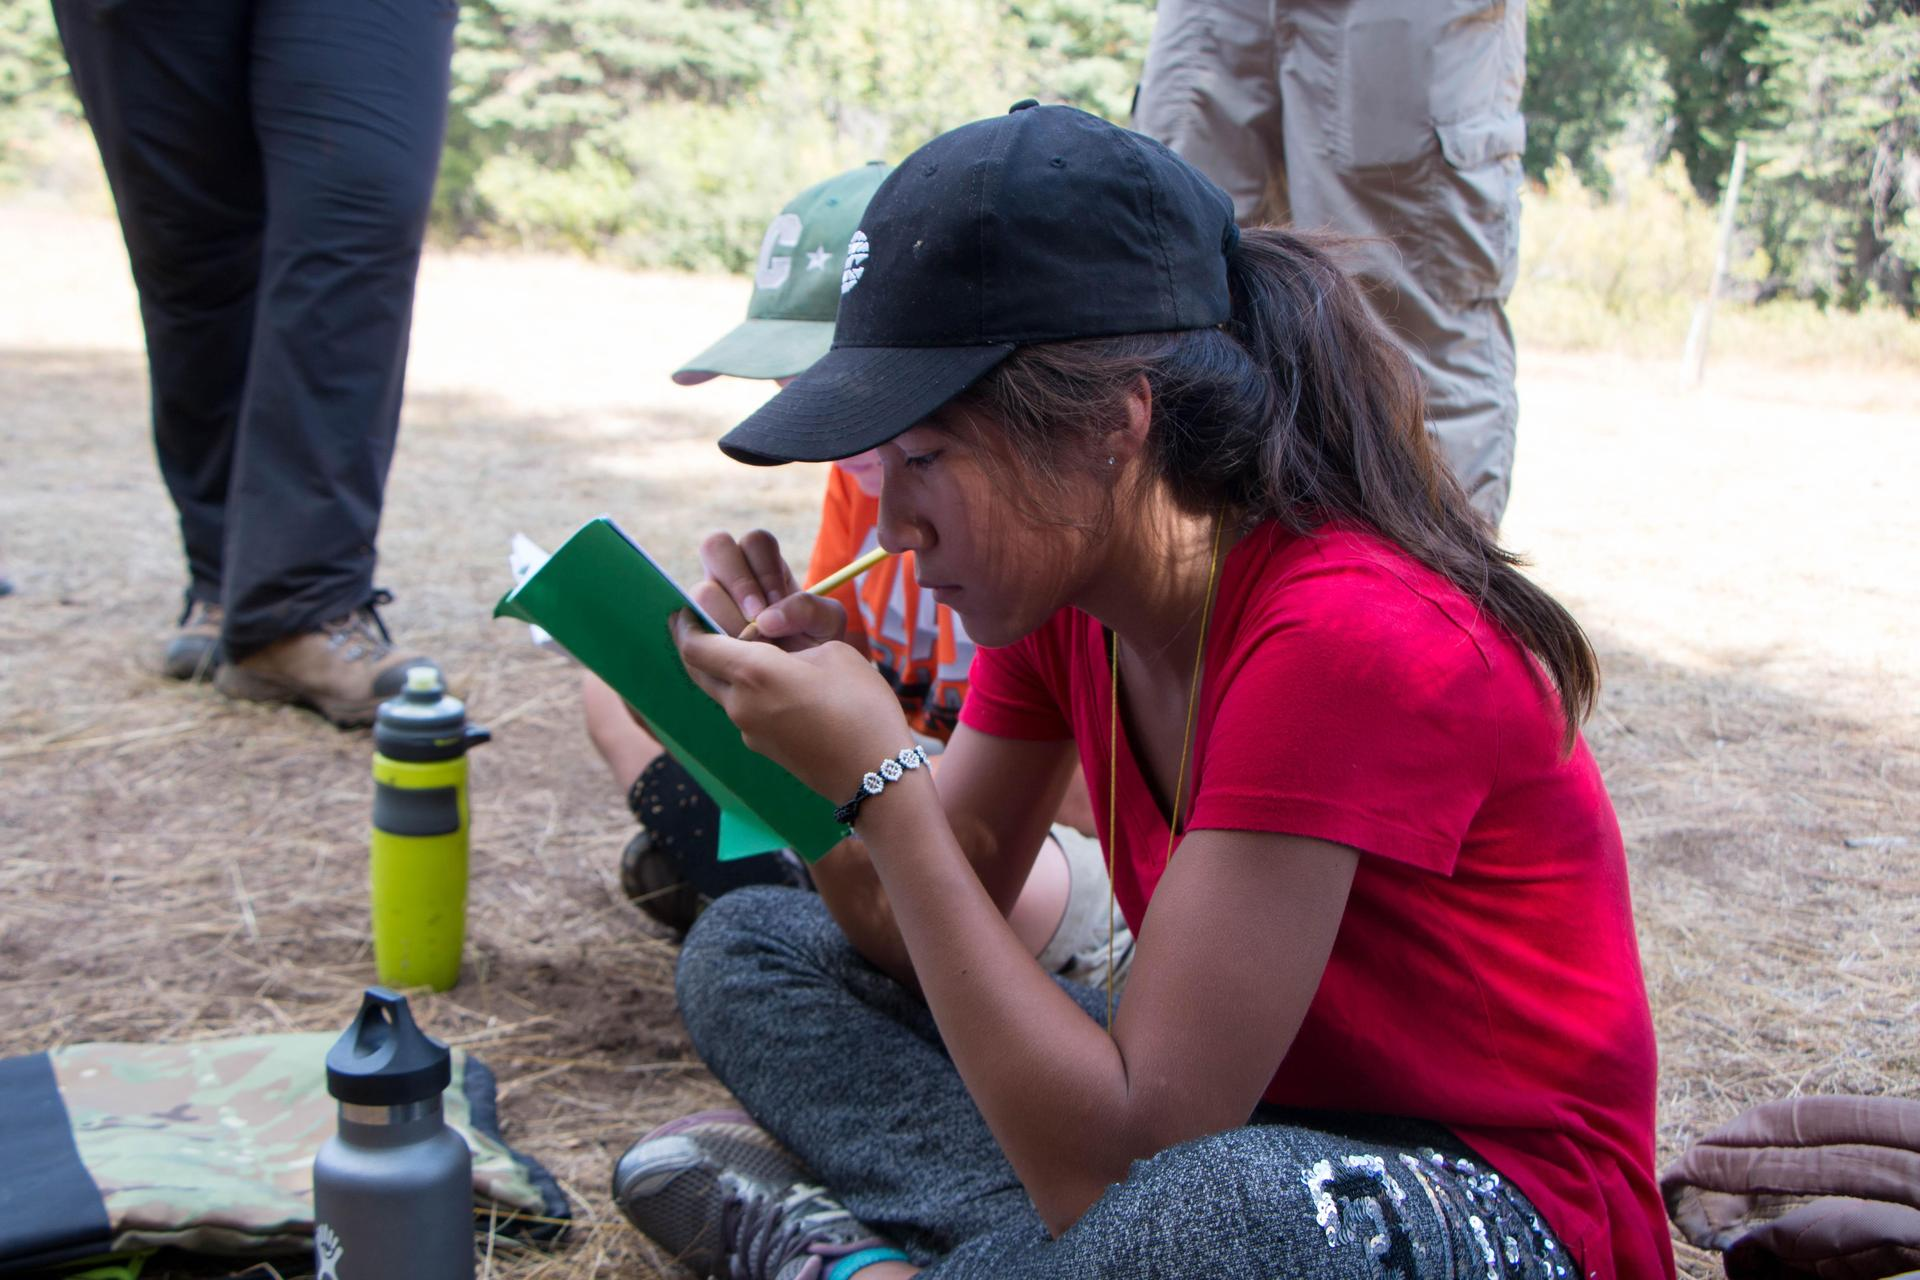 Student Writing in her Camp Journal